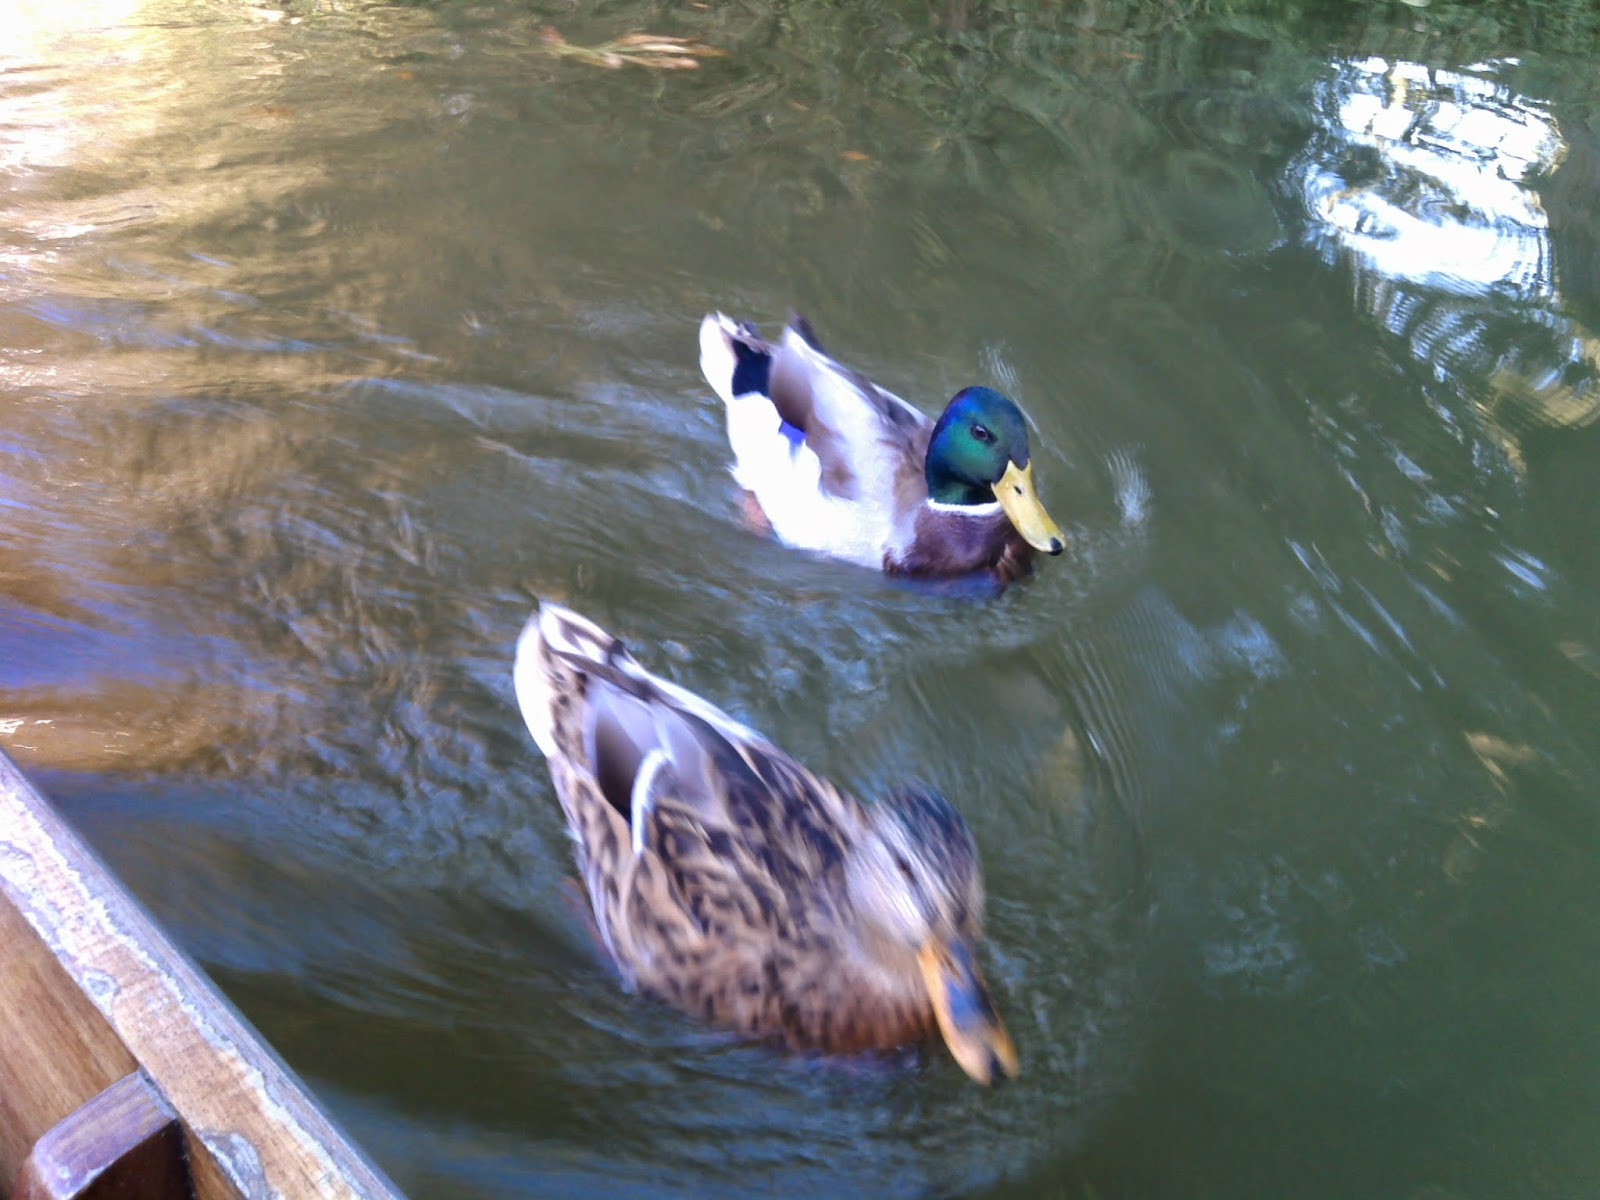 ducks by boat punting in oxford